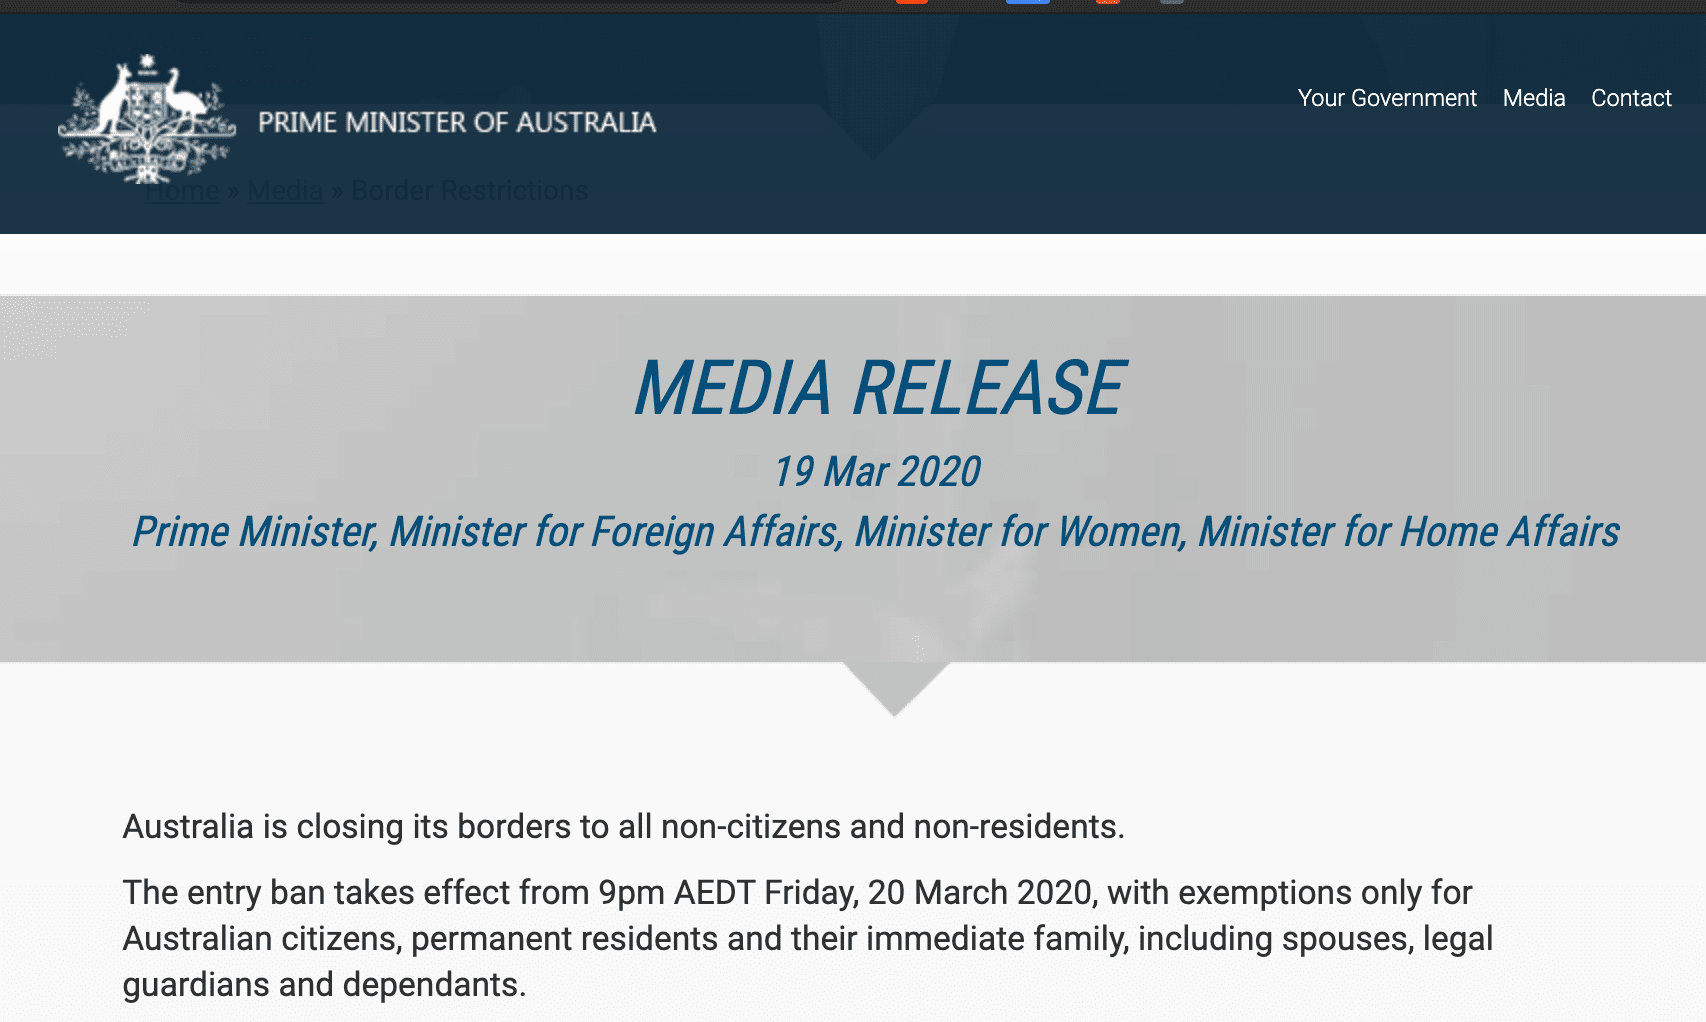 Media release on 19 March 2020 by Australian prime minister announcing entry ban on new arrivals for non-australians